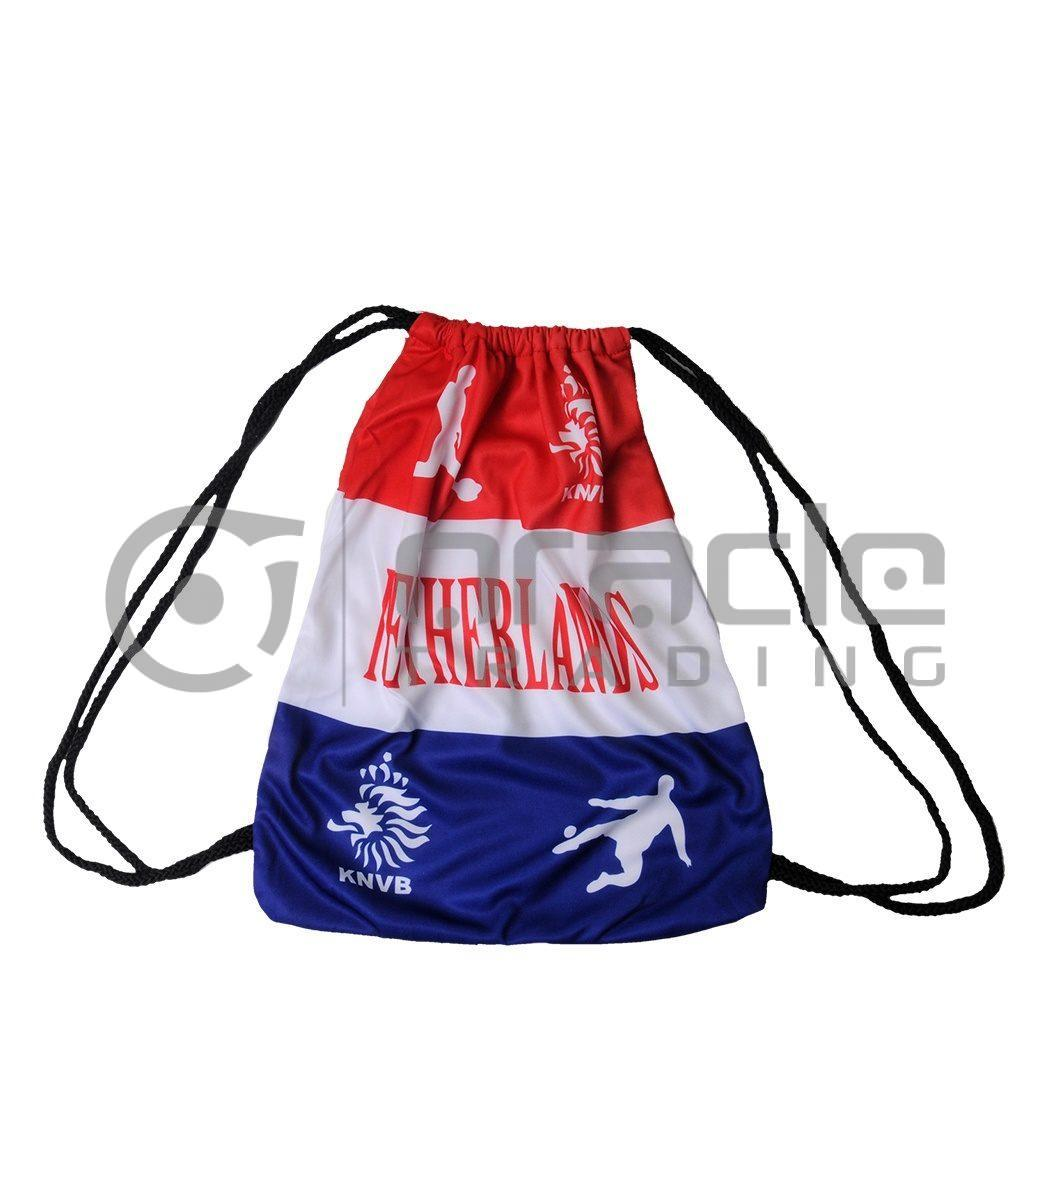 Holland Gym Bag - Tricolour